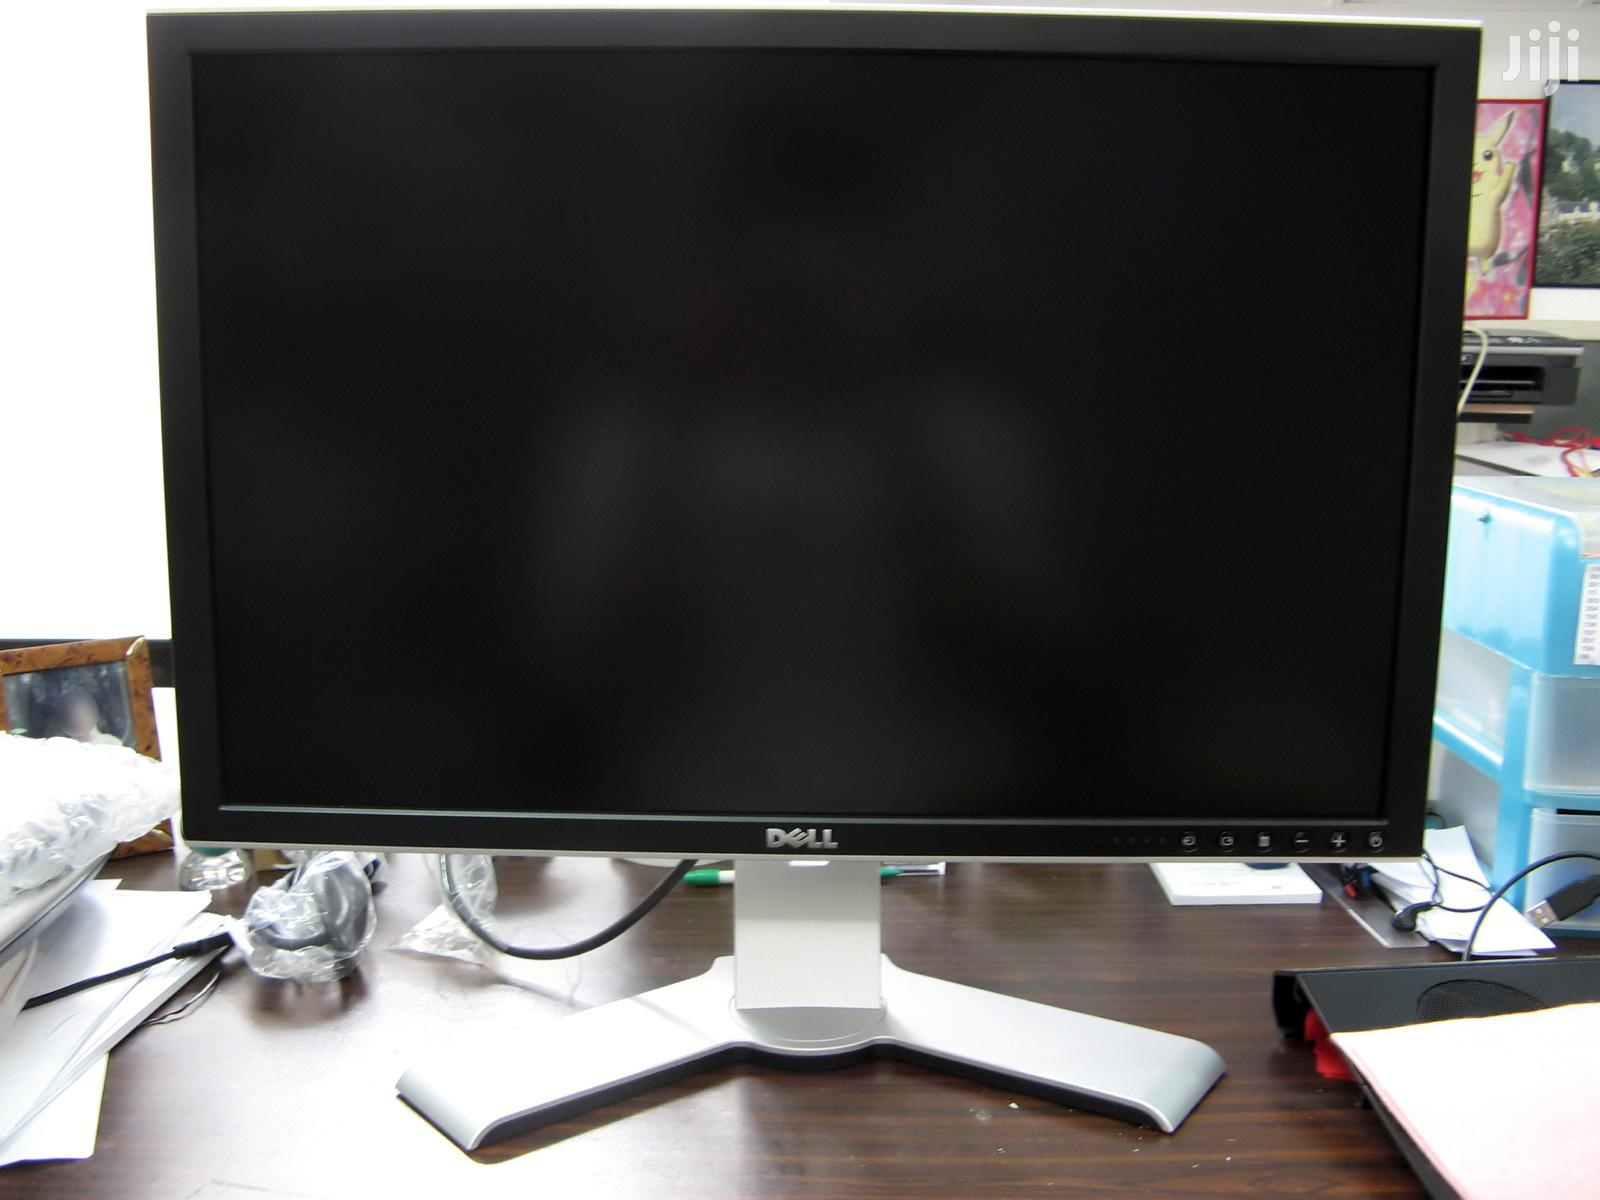 Home Used Dell Monitors 18.5 Inches Wide